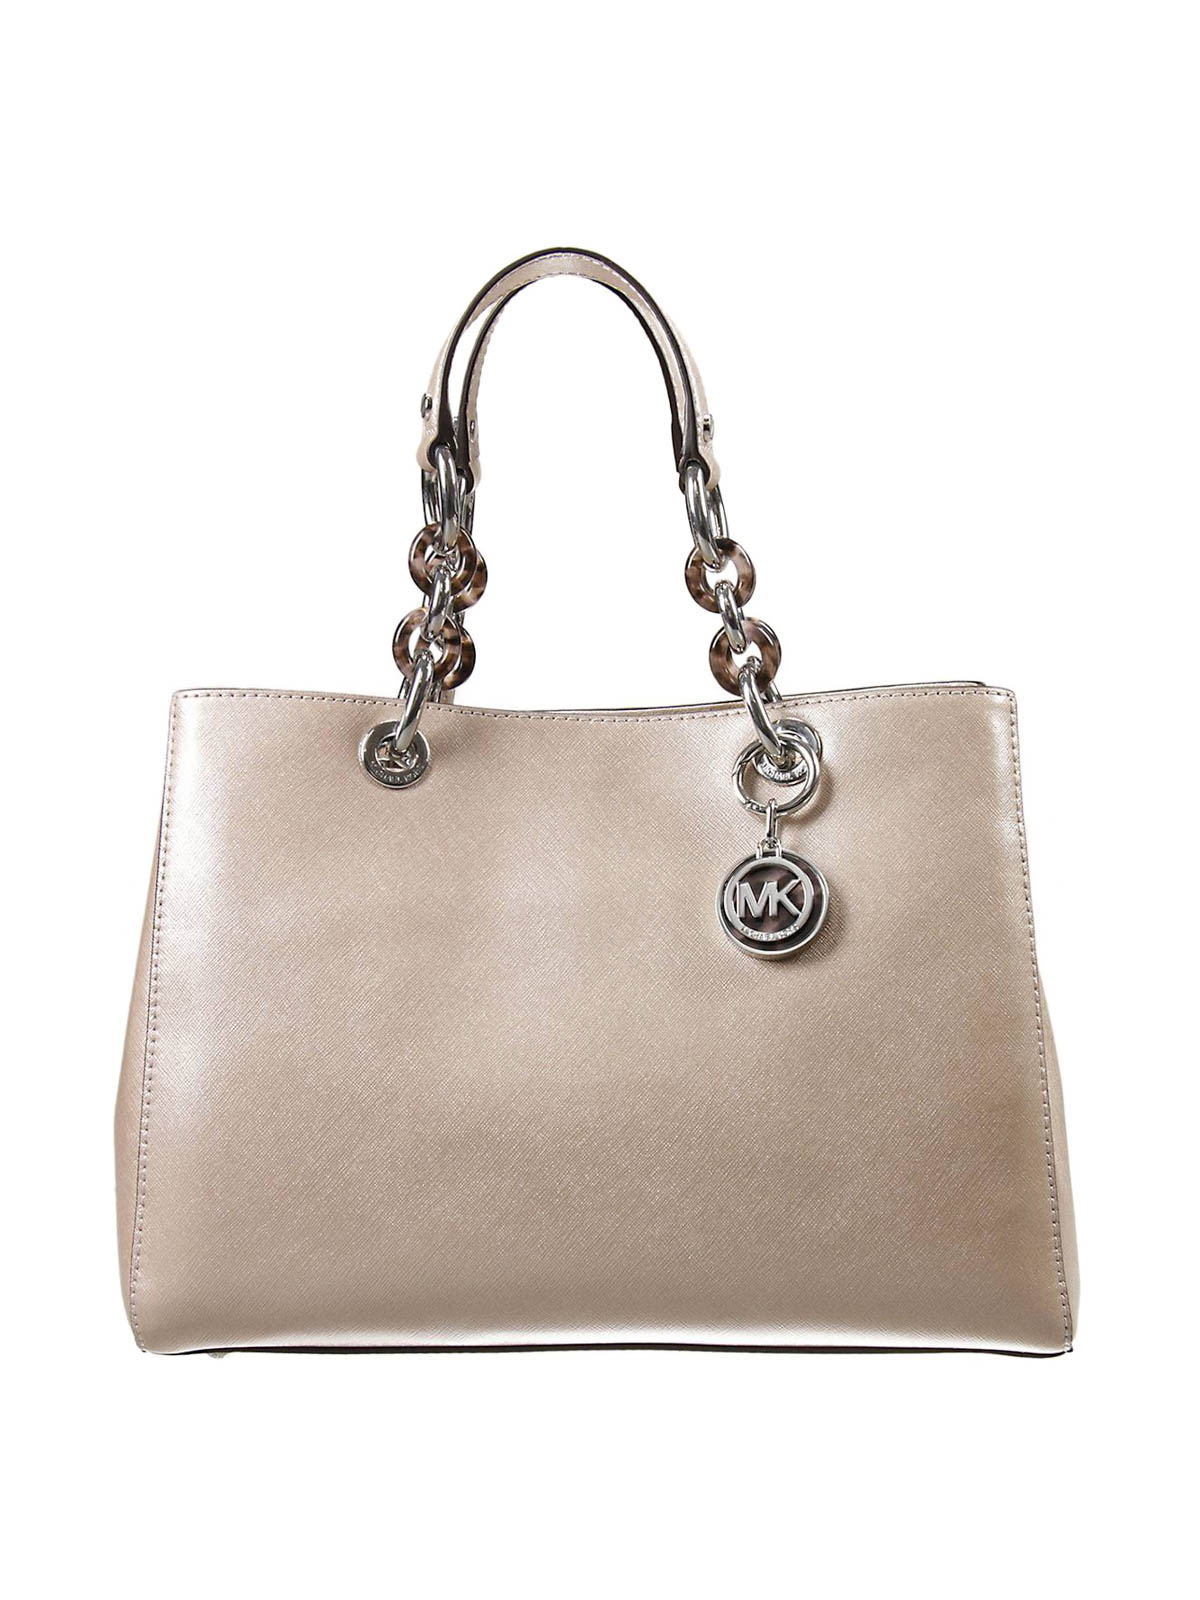 4996ca3b94f2f3 Michael Kors Saffiano Handbags | Stanford Center for Opportunity ...